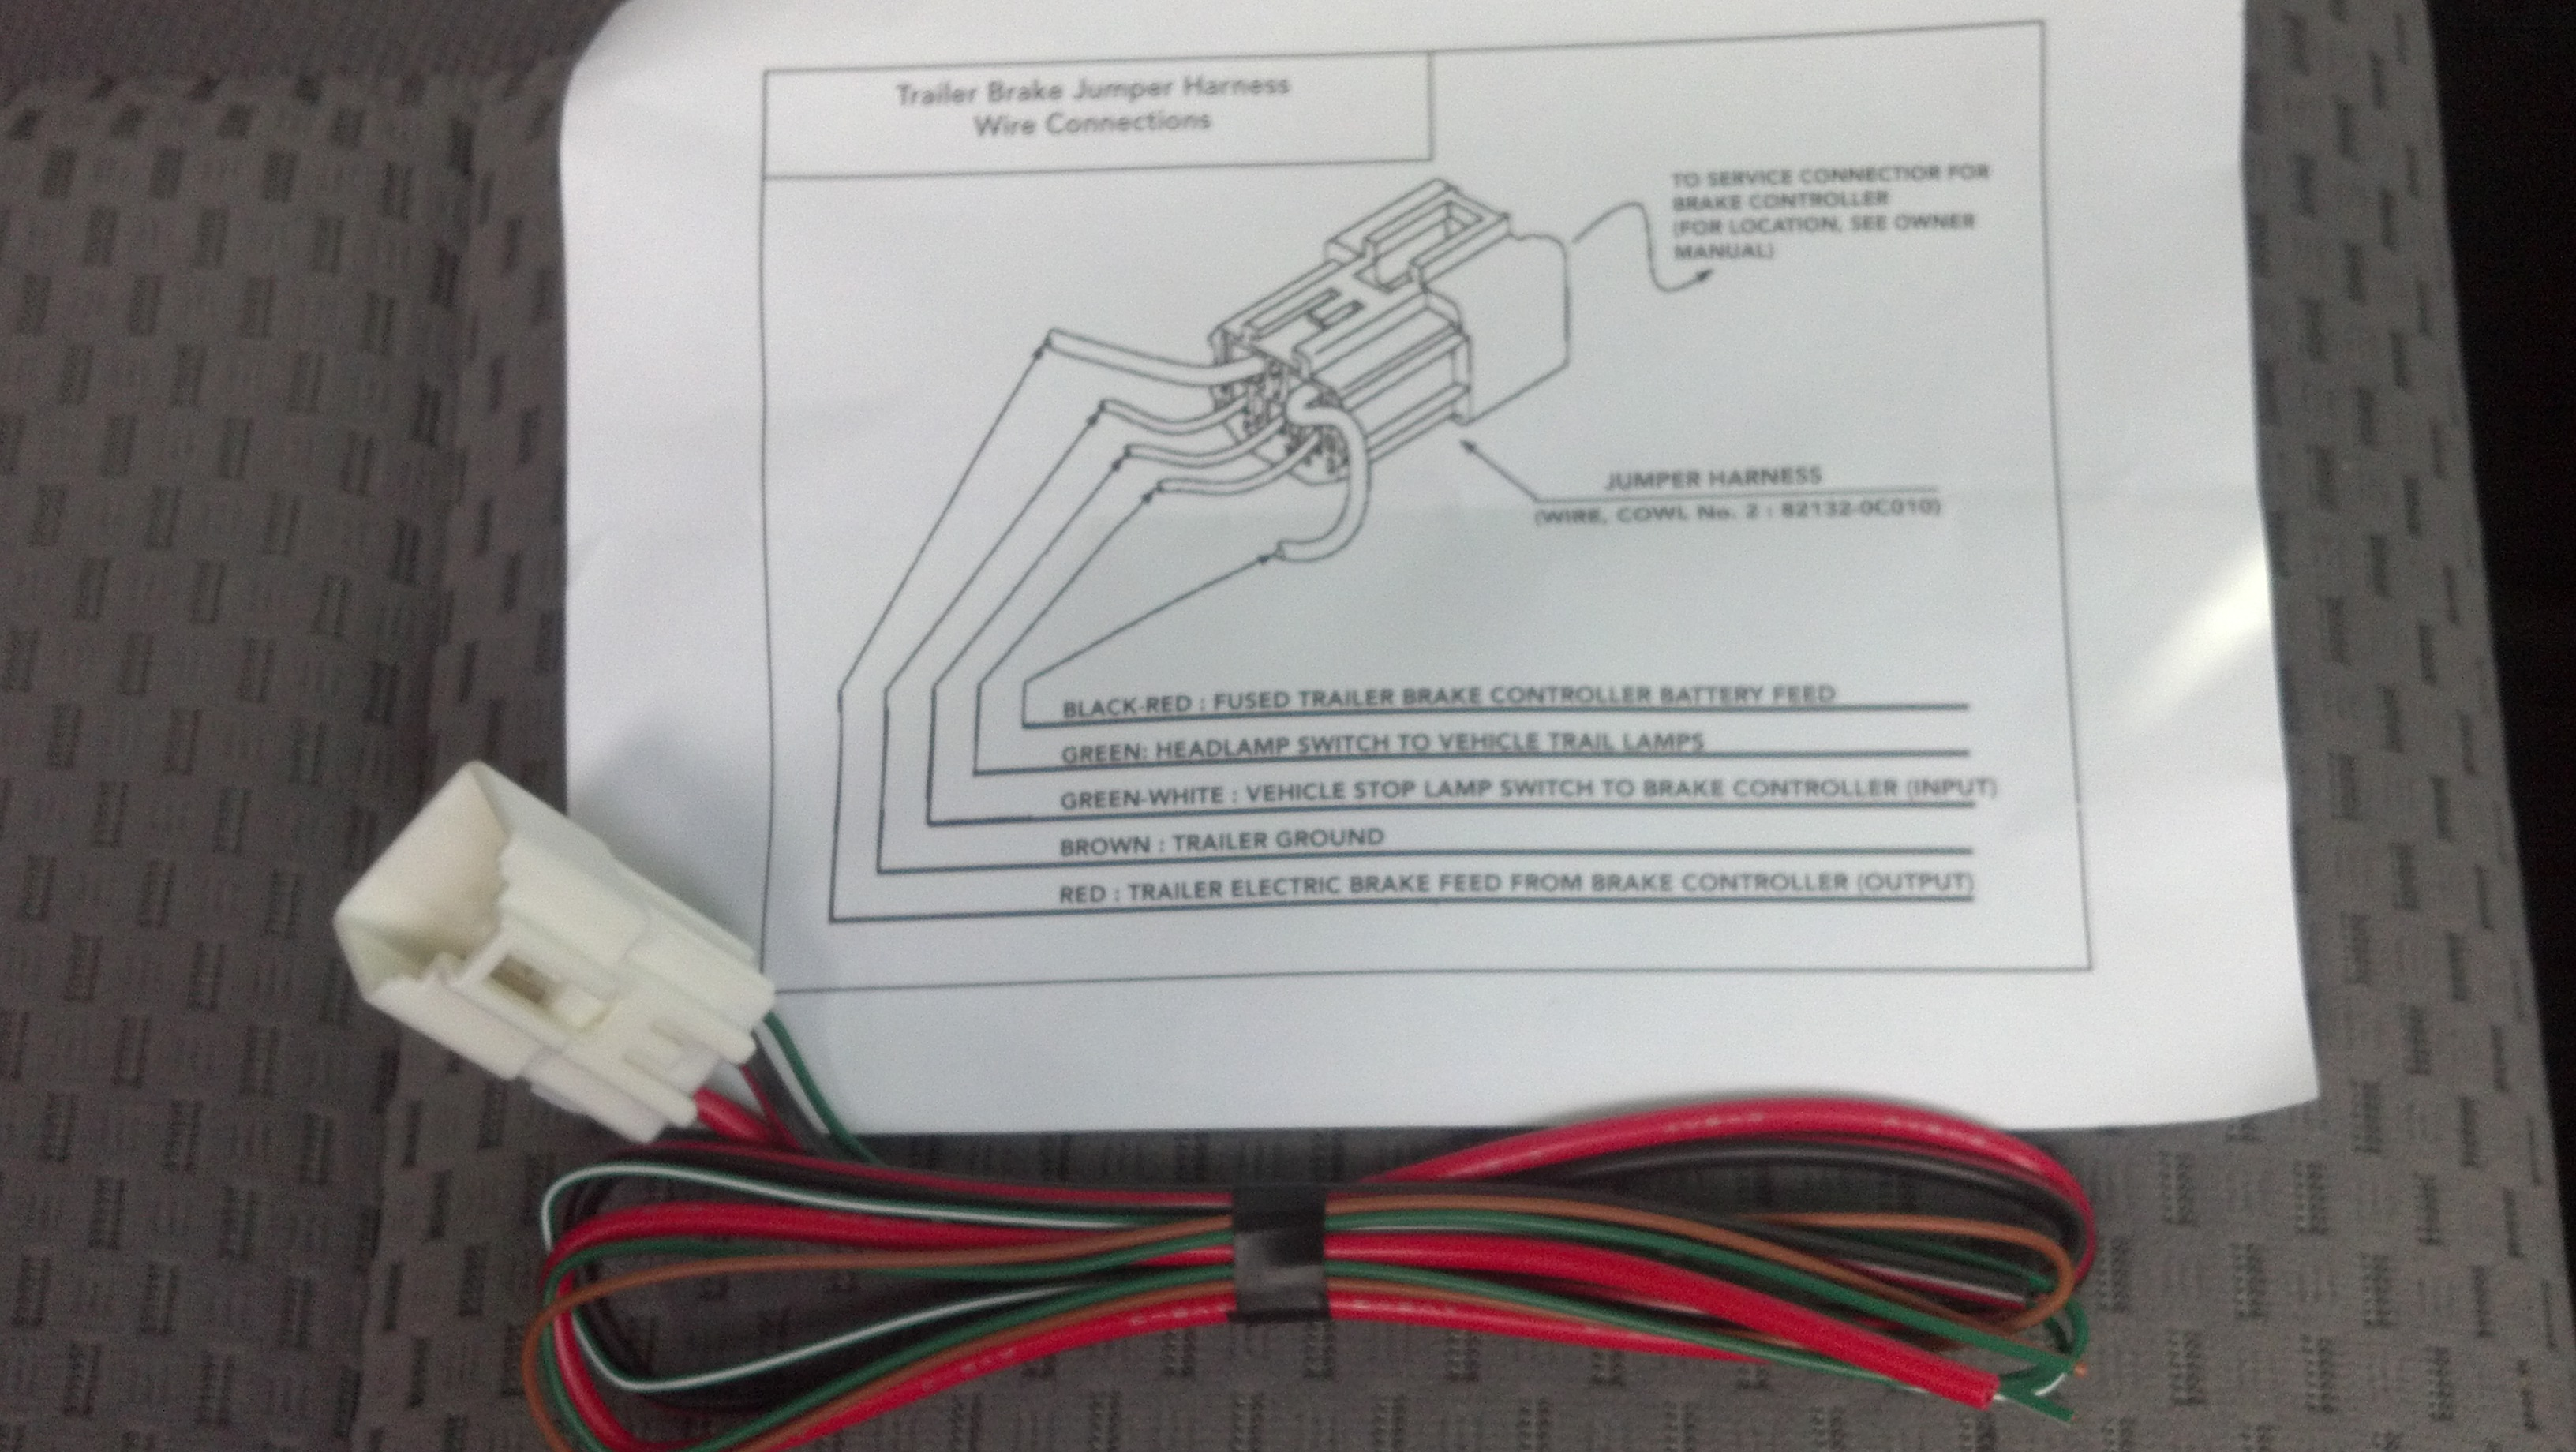 Prodigy Brake Controller >> Where to install a prodigy brake controller on a 2011 tundra